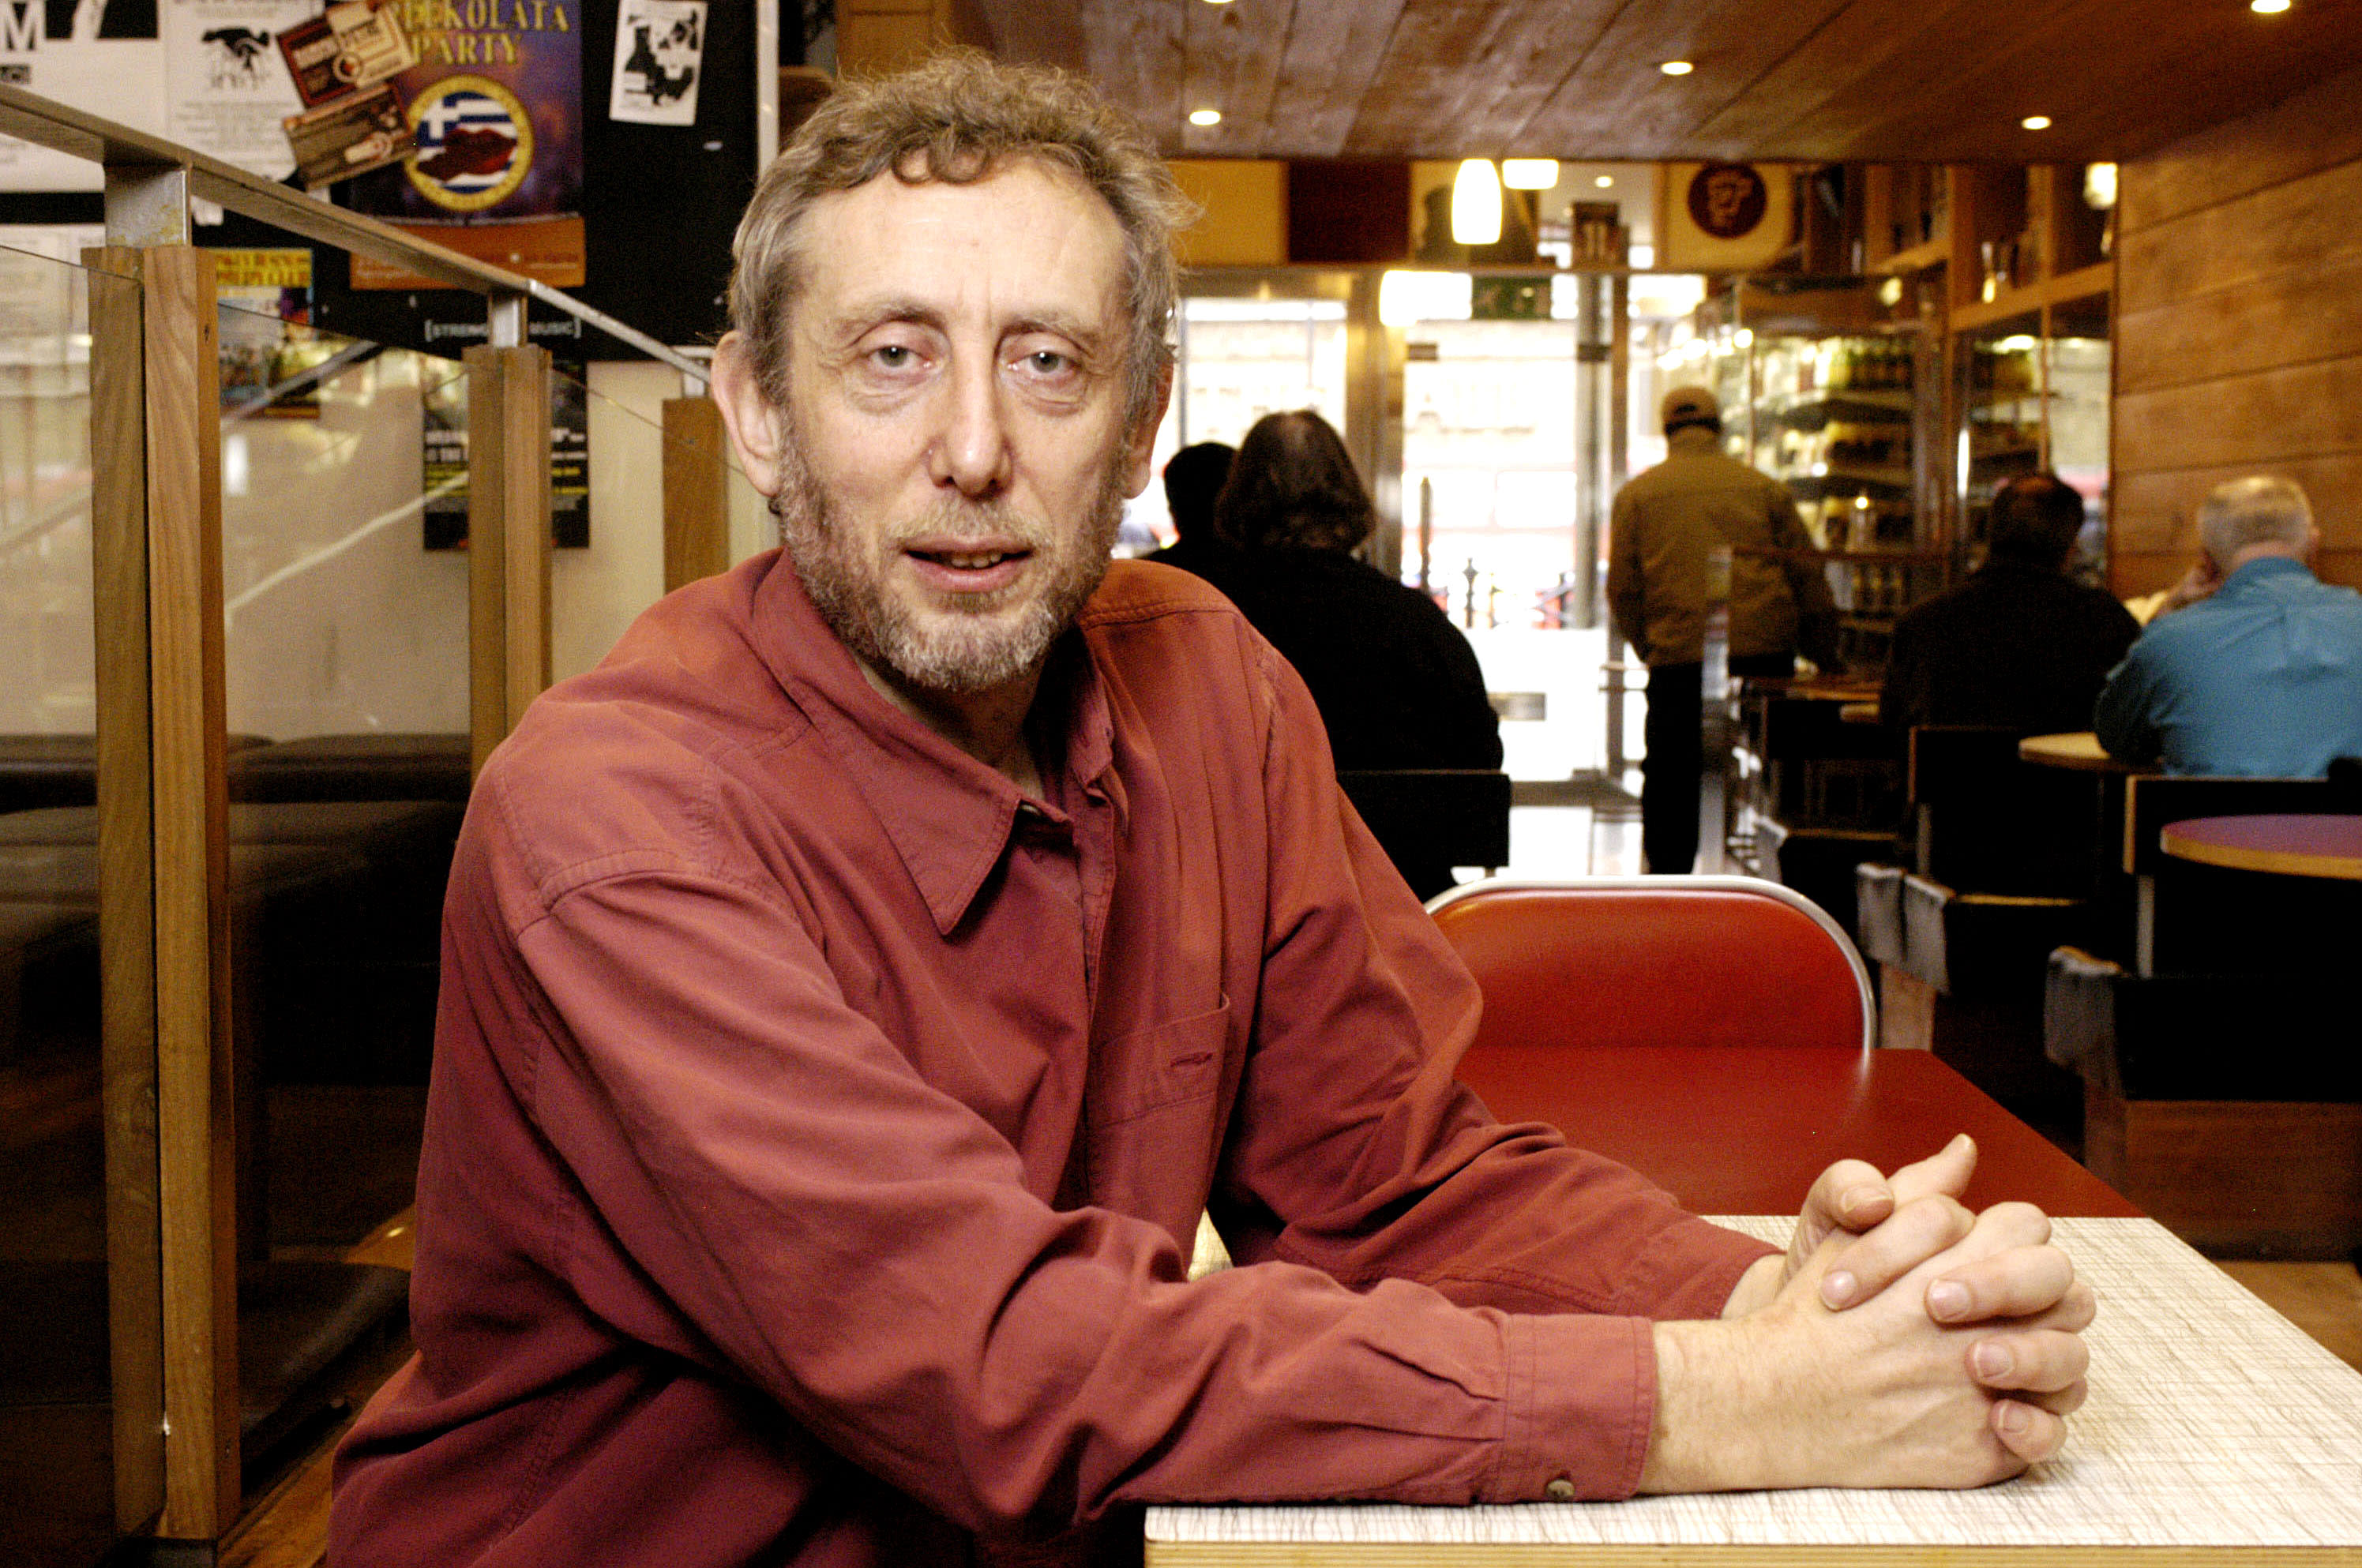 Portrait of writer and broadcaster Michael Rosen, photographed on the 26th January 2004, Upper St, Islington, London. N1.; (Photo by Nick Cunard/Photoshot/Getty Images)